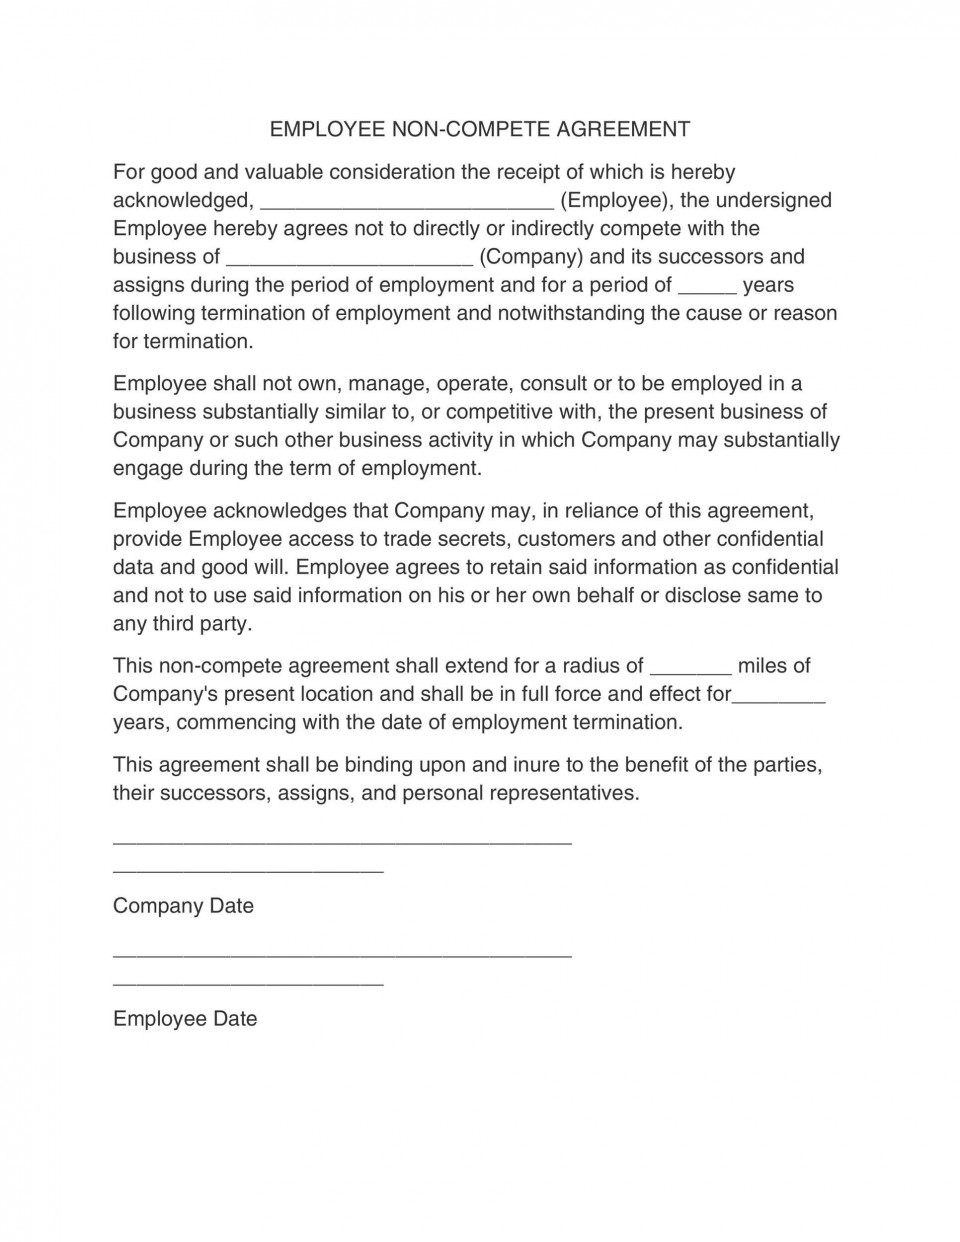 006 Unique Employee Non Compete Agreement Template Photo  Free Confidentiality Non-compete Disclosure960